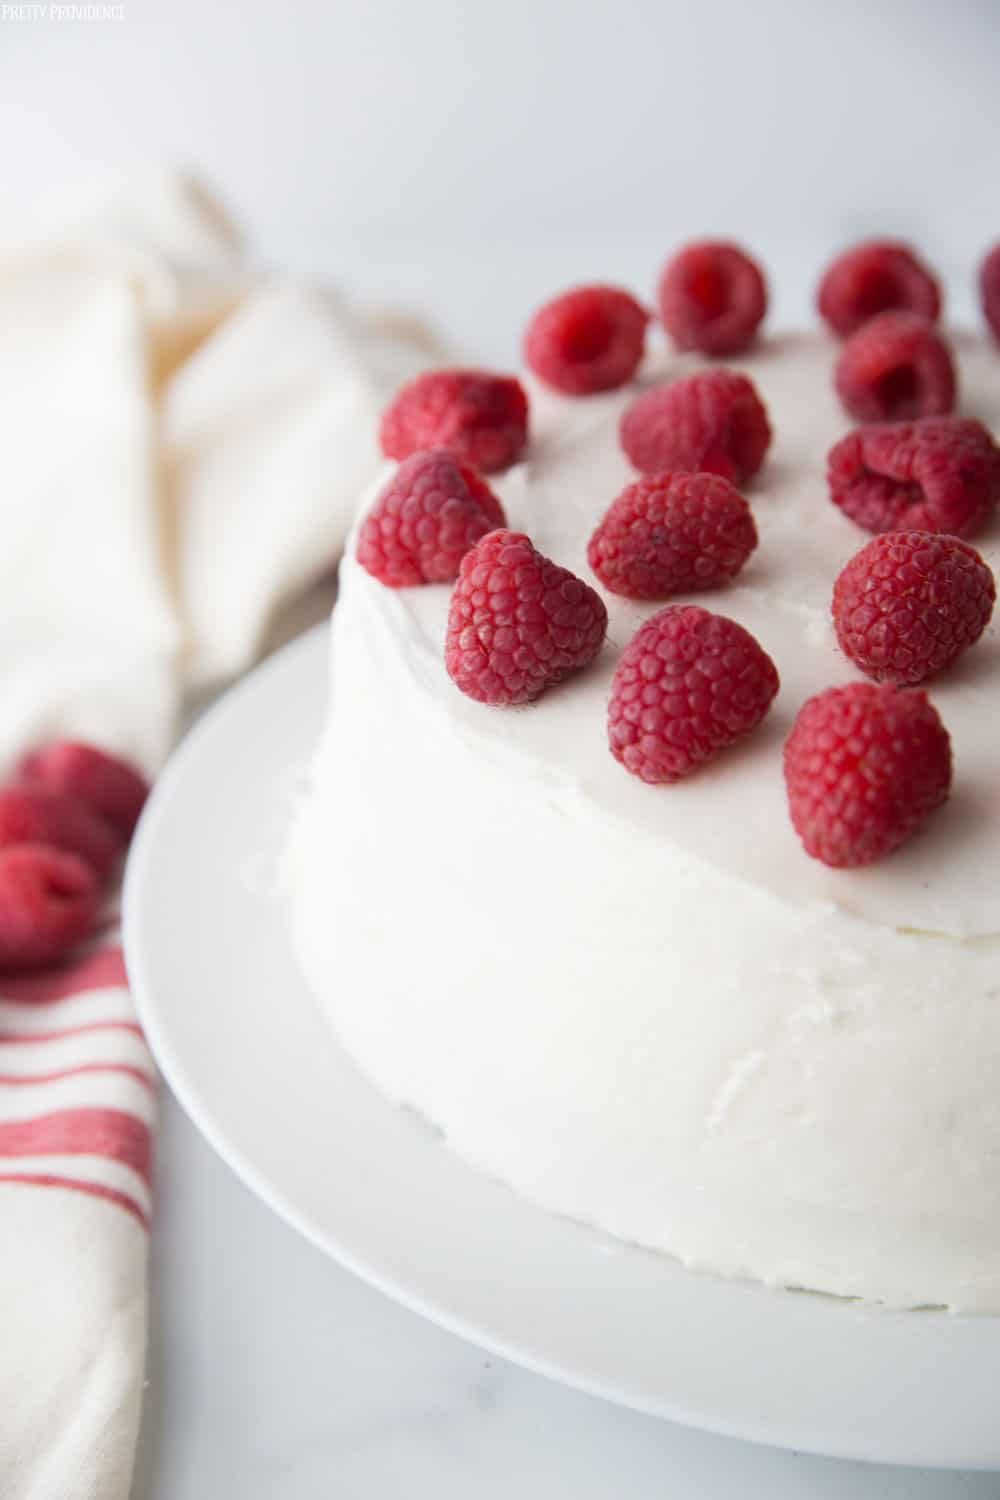 Chocolate Raspberry Cake covered in cream cheese frosting garnished with fresh raspberries on the top.